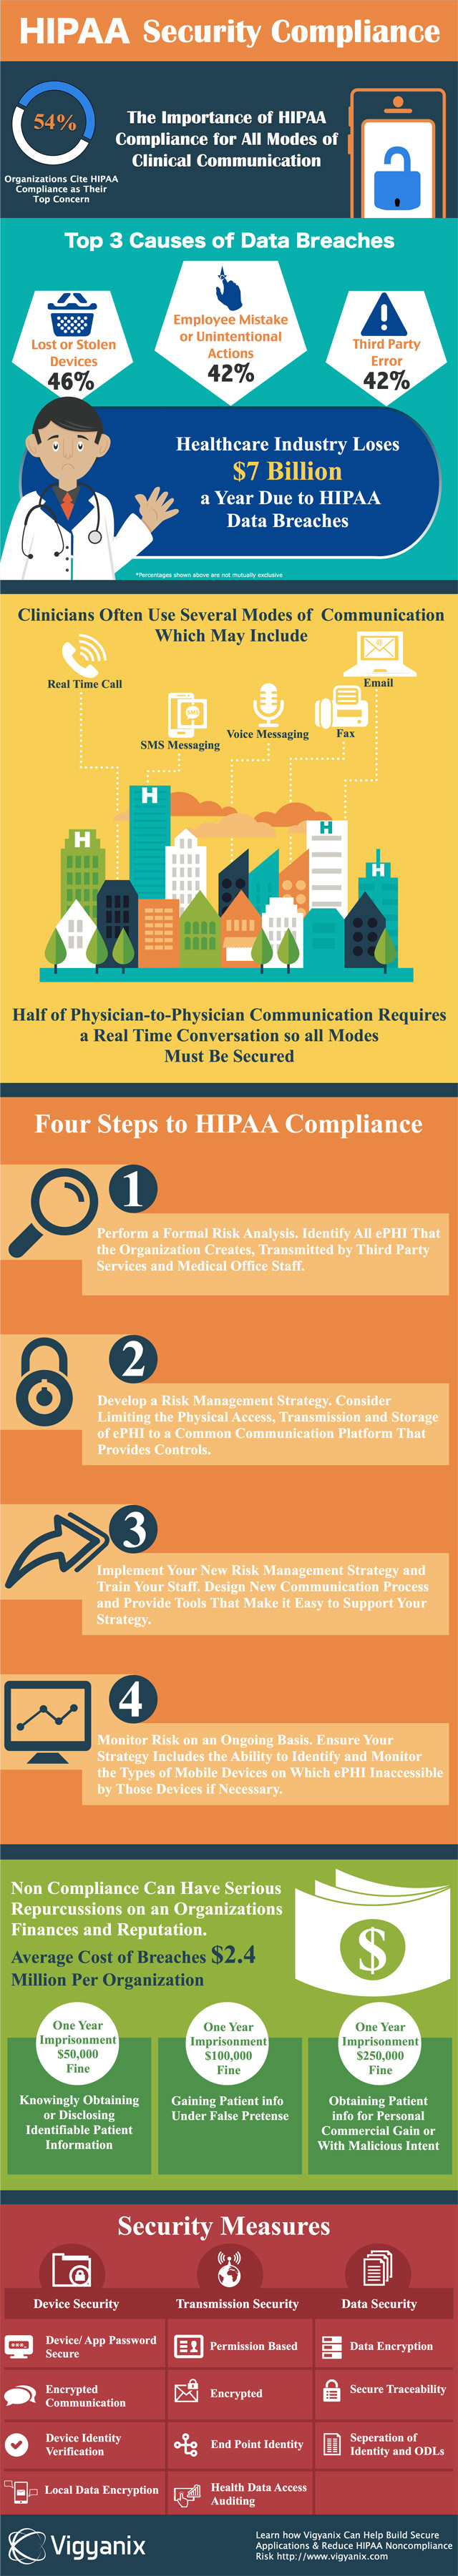 The importance of HIPAA compliance